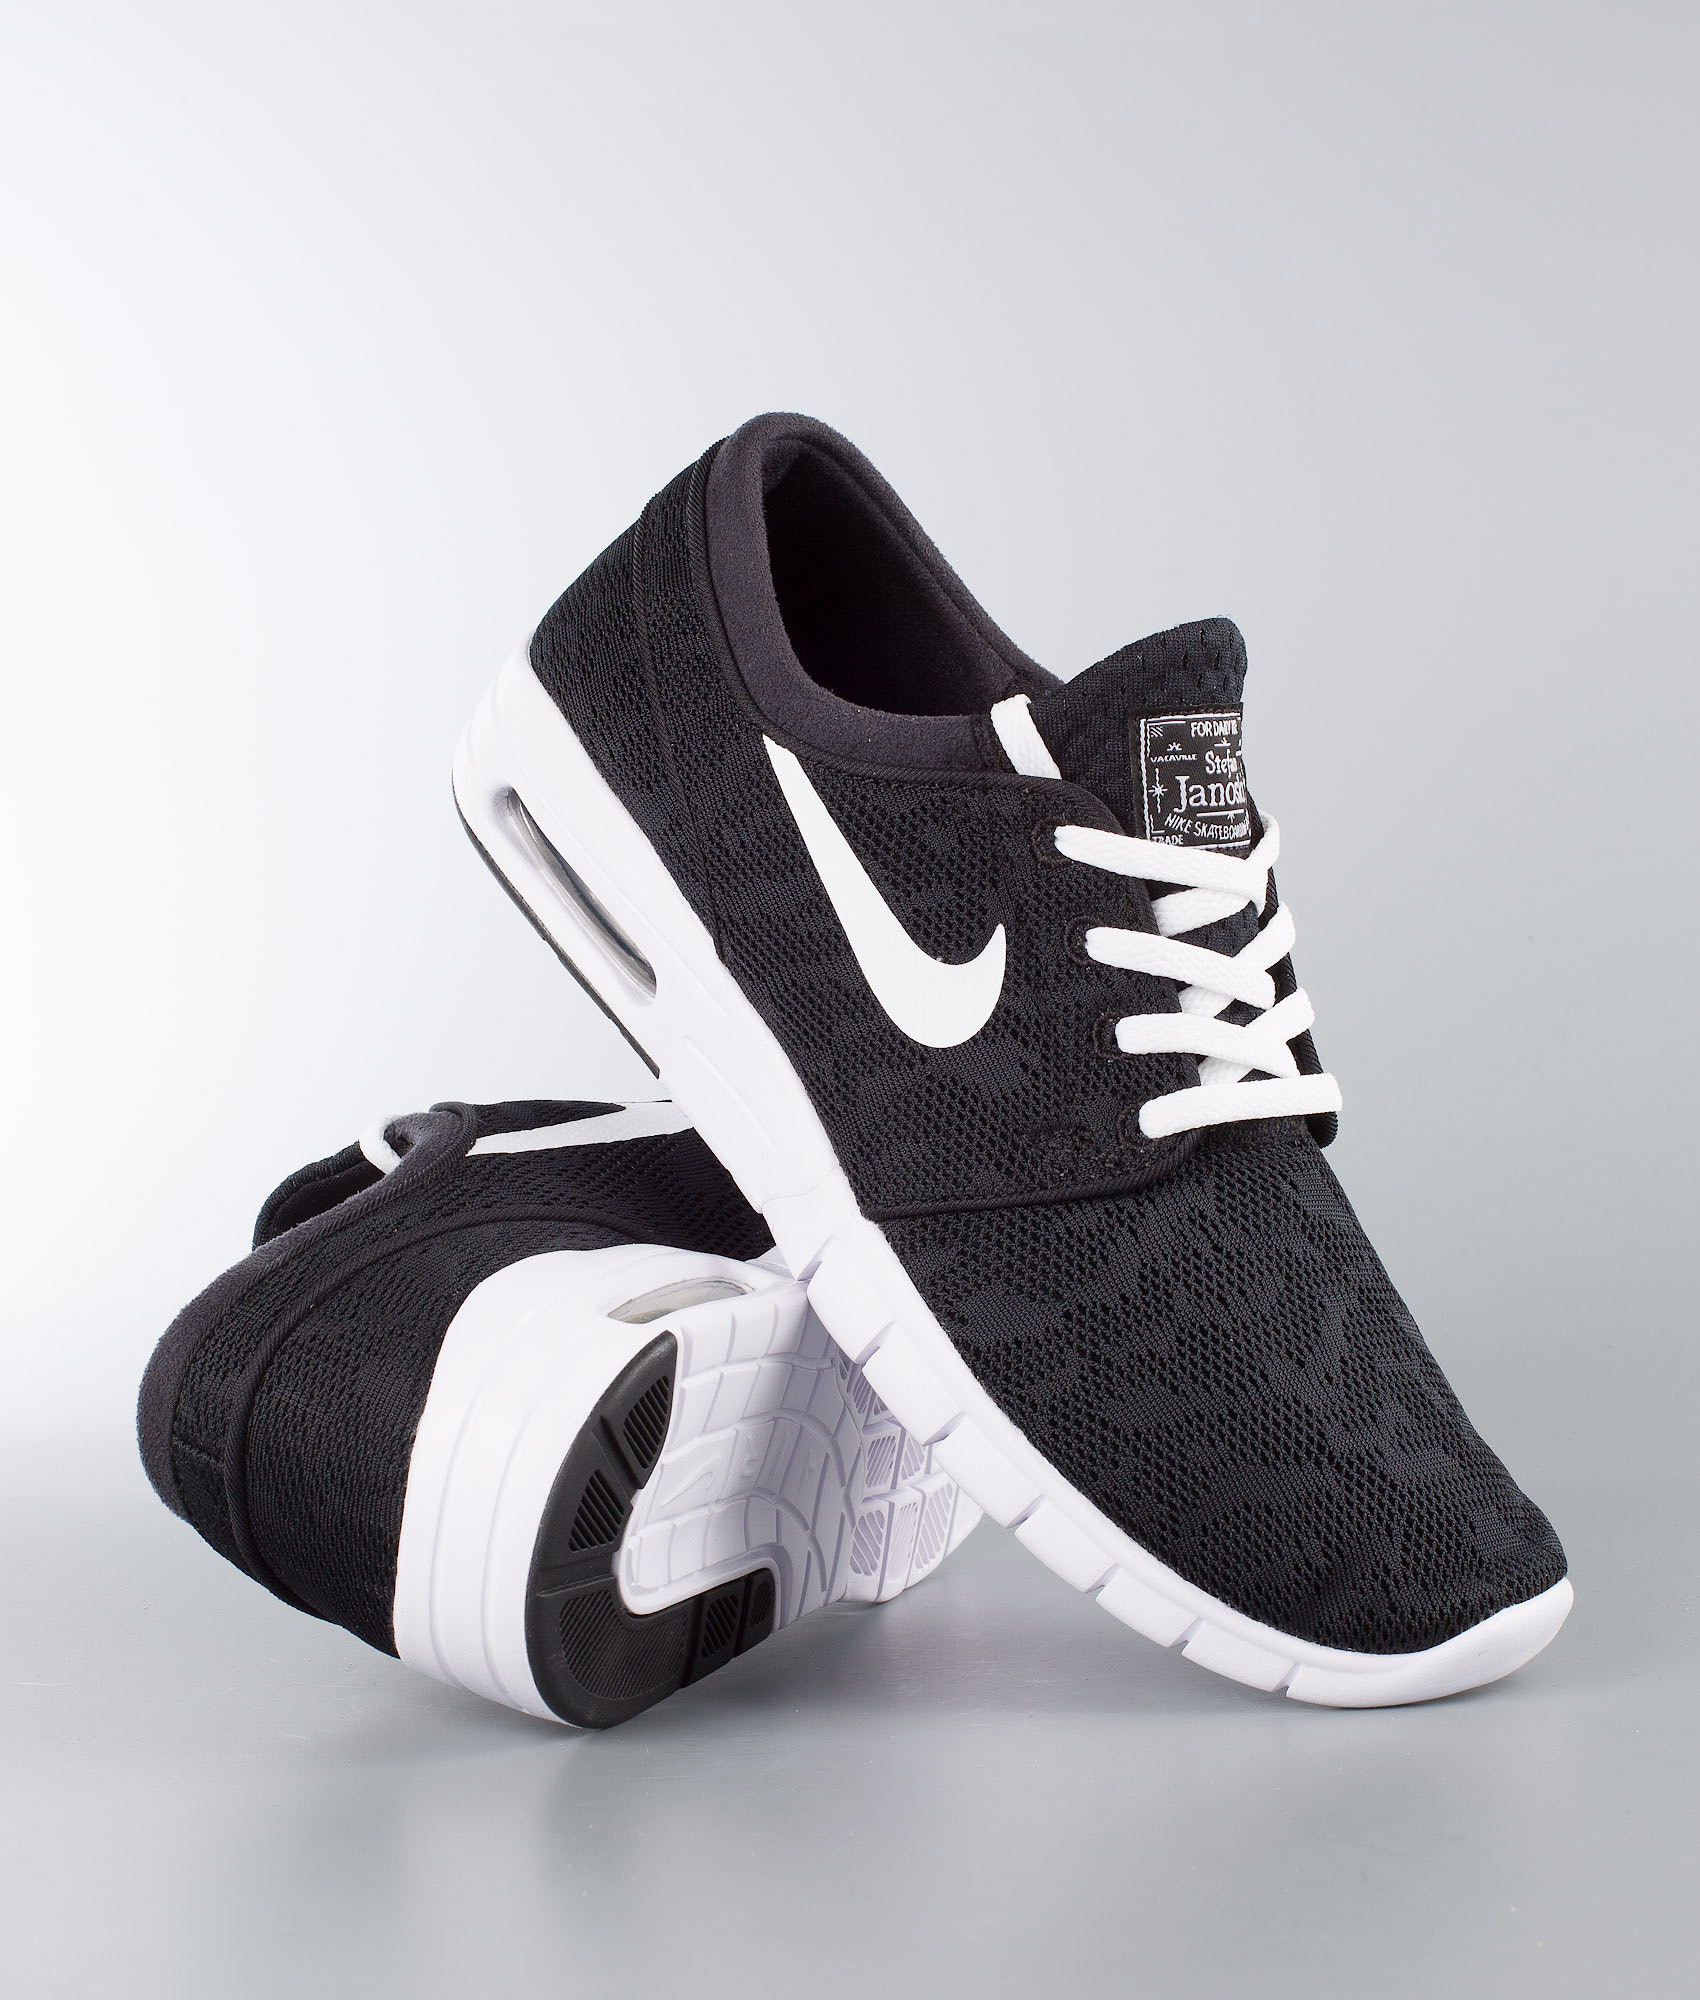 finest selection ddd12 71cd2 Nike Stefan Janoski Max Schuhe